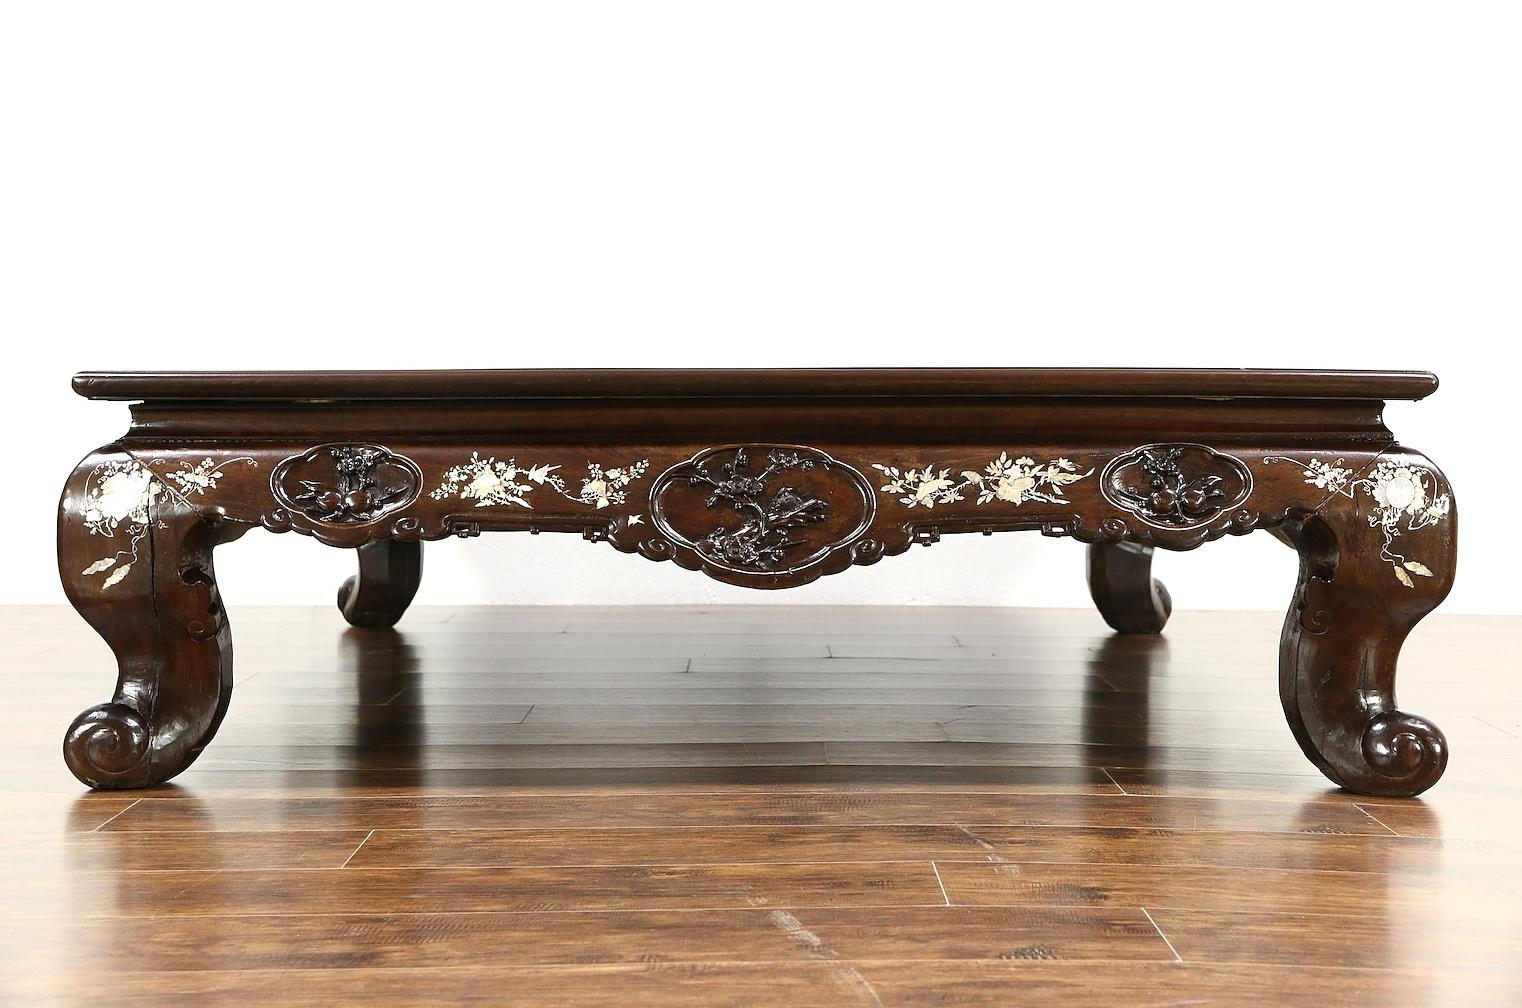 Chinese Rosewood 1860 Antique Low Banquet Dining Or Coffee Table Harp Gallery Antique